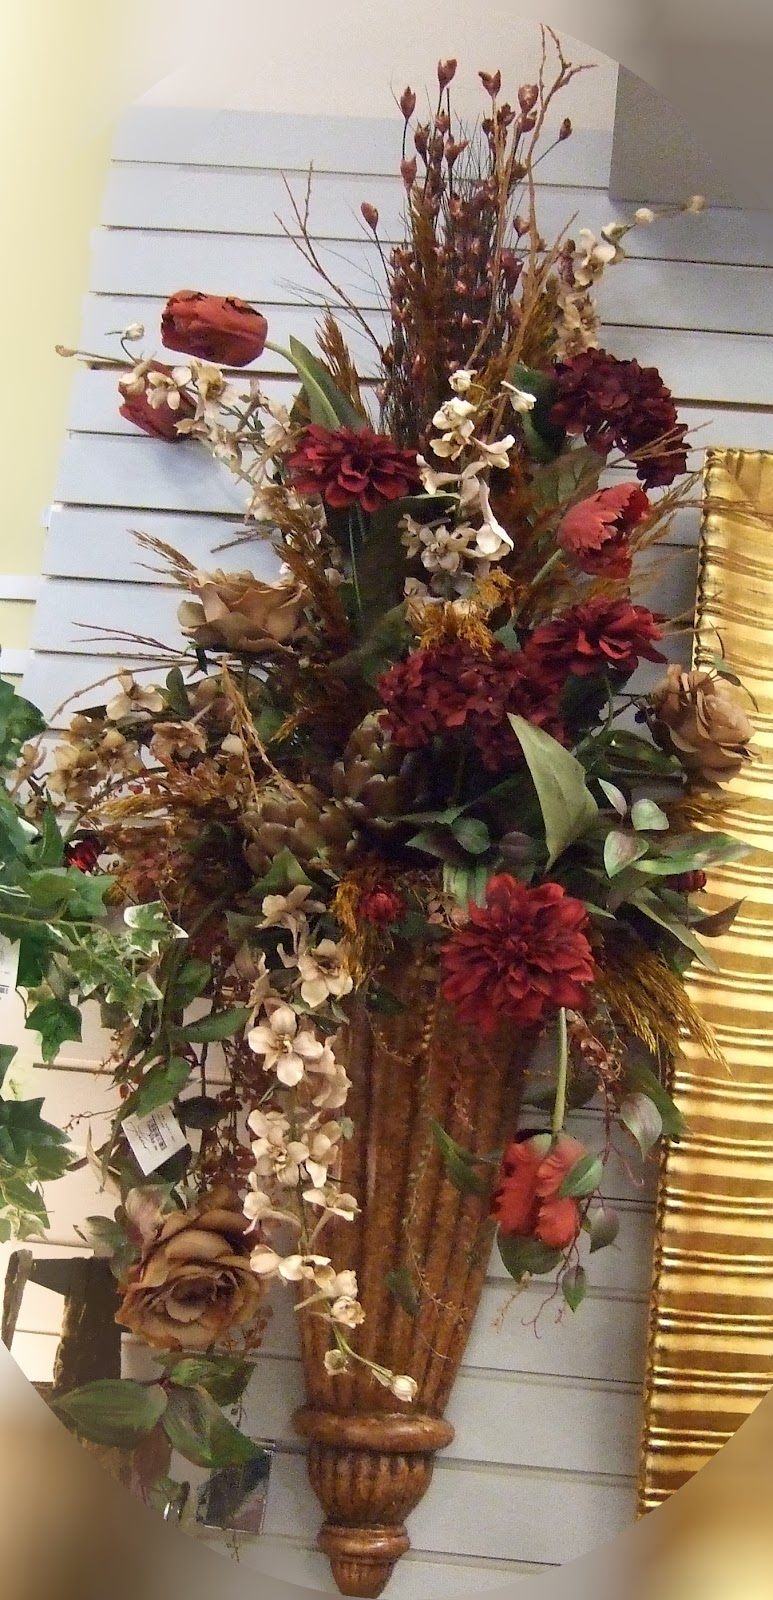 Ana silk flowers imageswall sconces silk flowers arrangements wall sconces silk flowers arrangements mightylinksfo